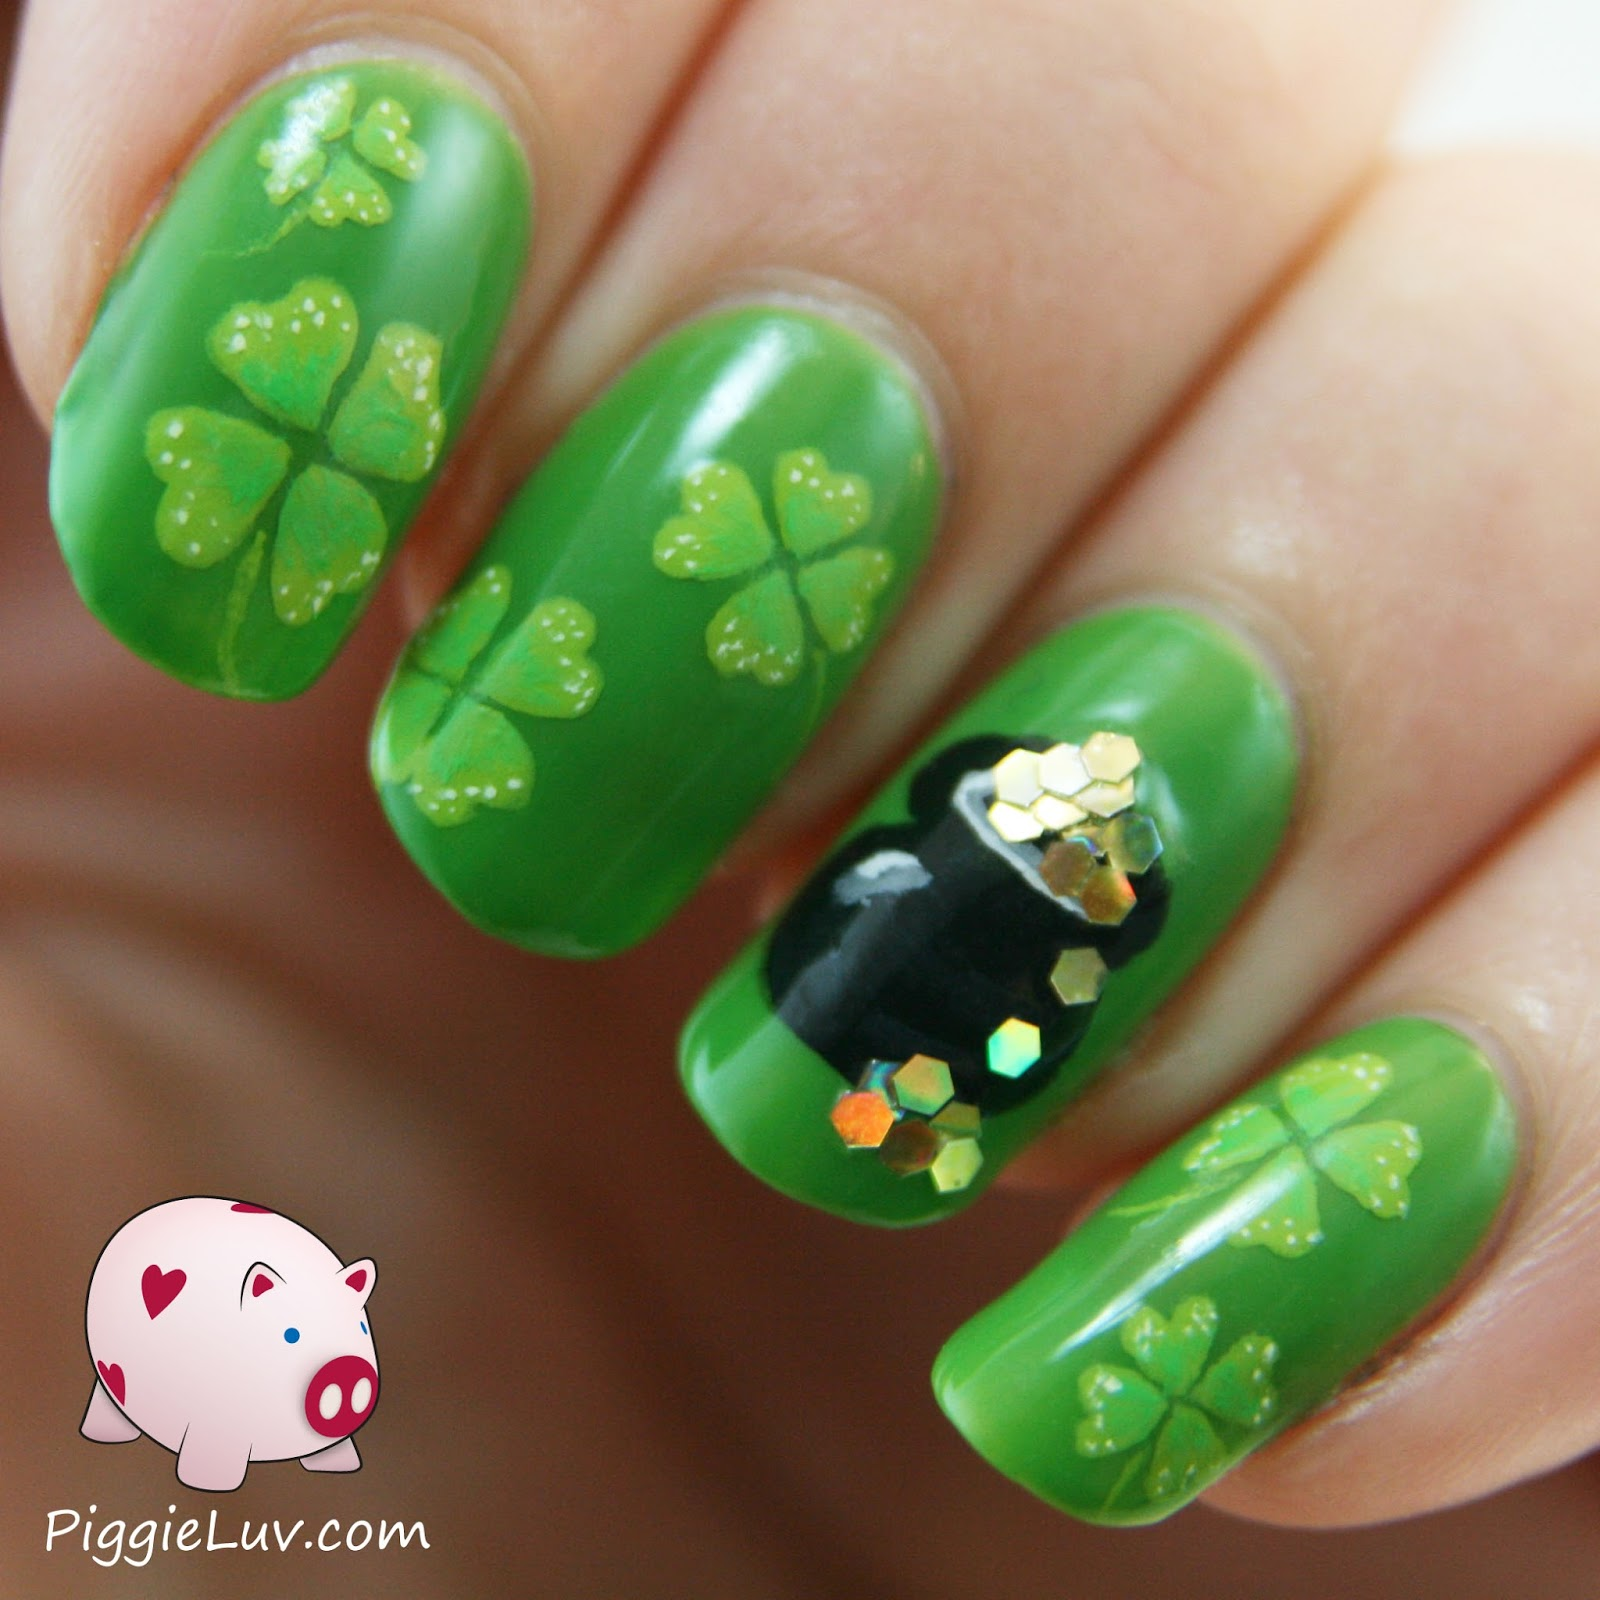 Piggieluv St Patricks Day Nail Art